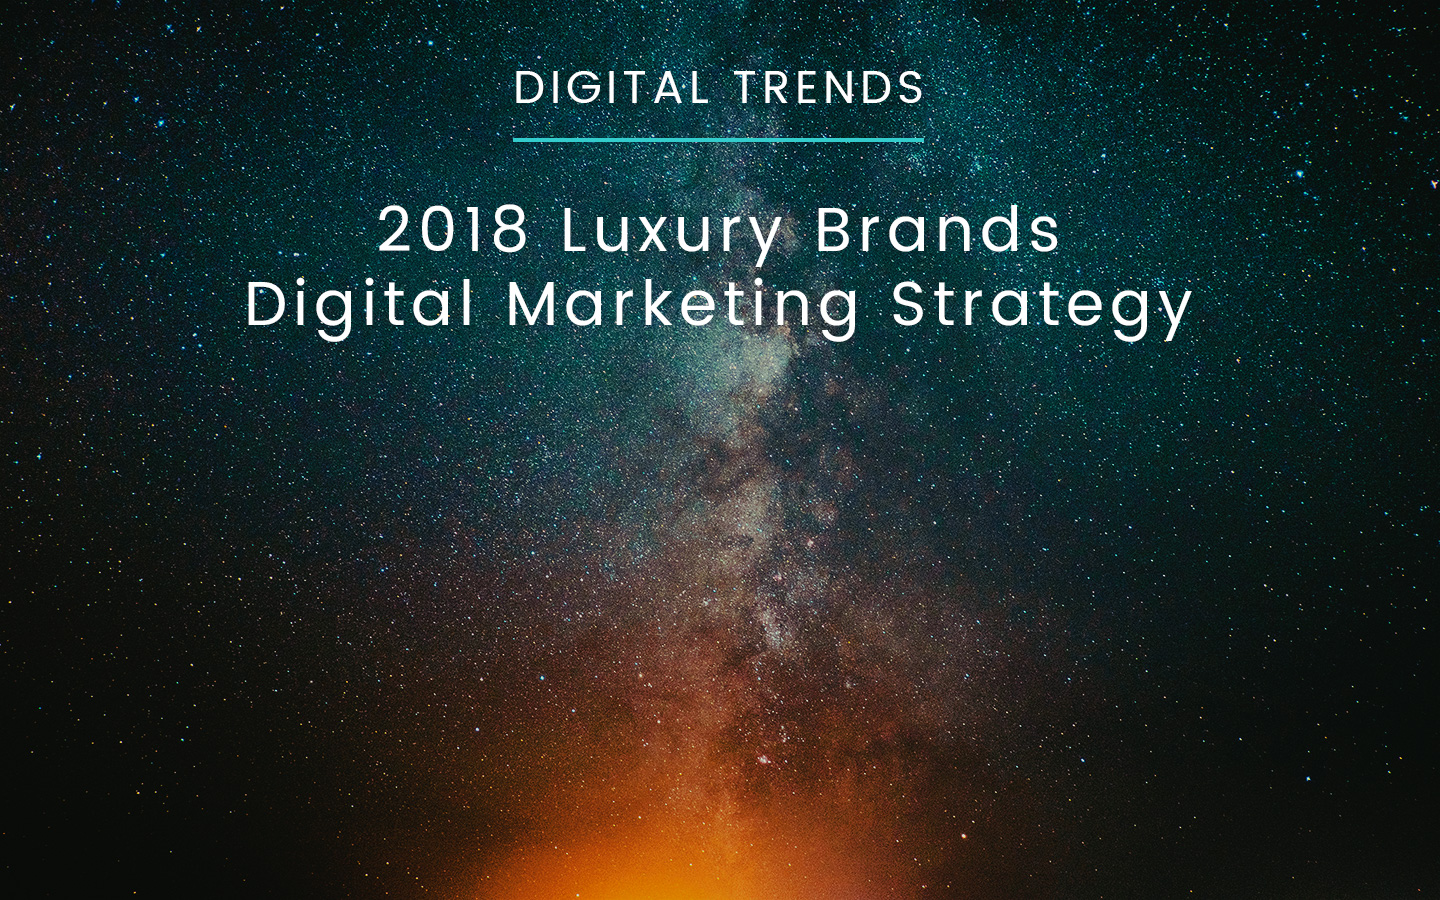 Luxury Brands Update their 2018 Digital Marketing Strategy